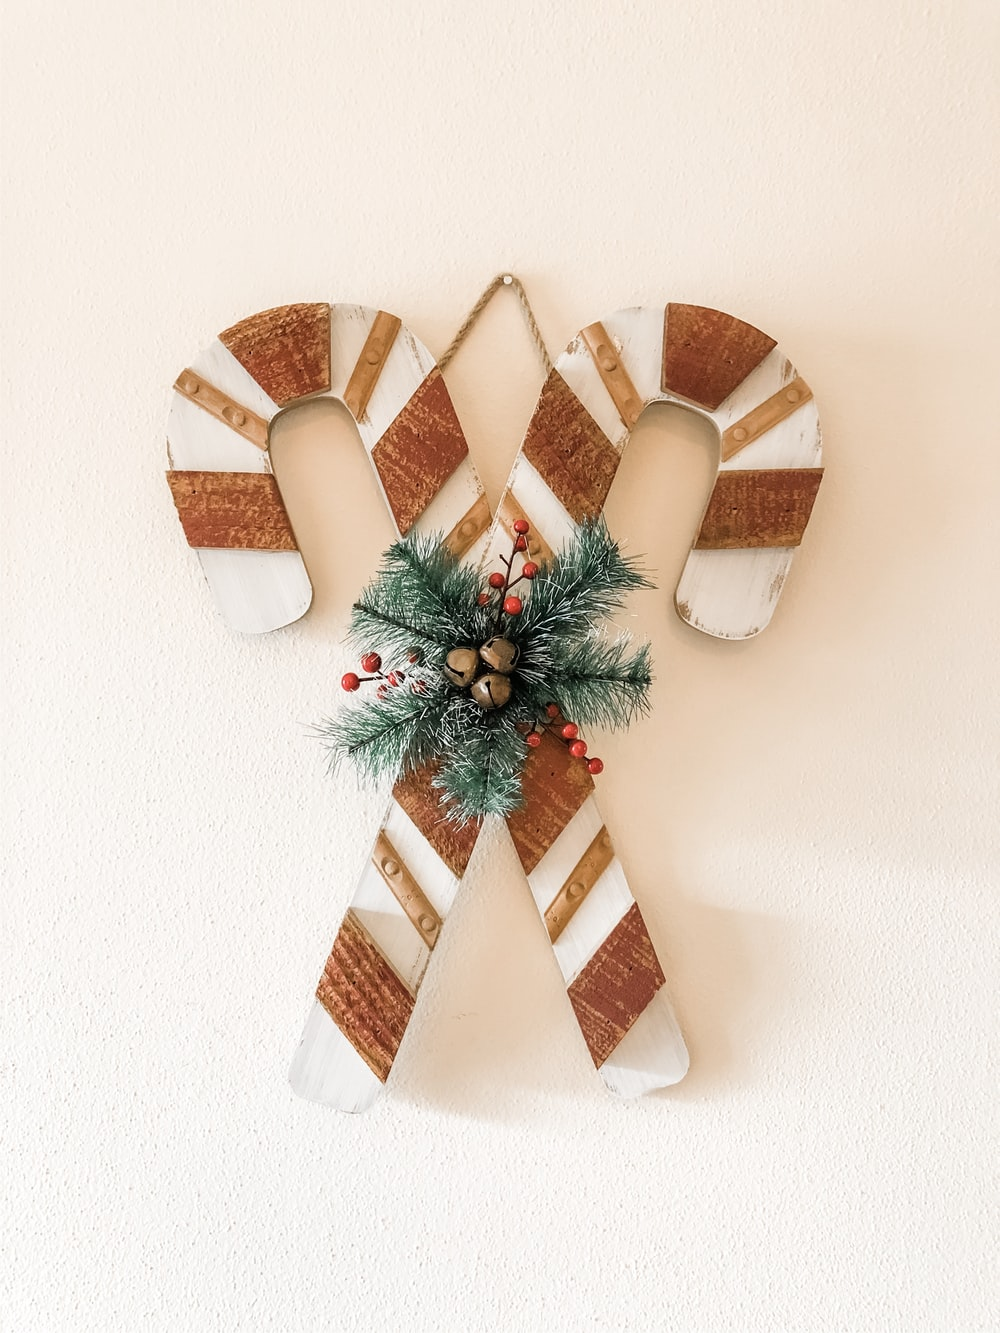 brown-and-white striped candy cane decors